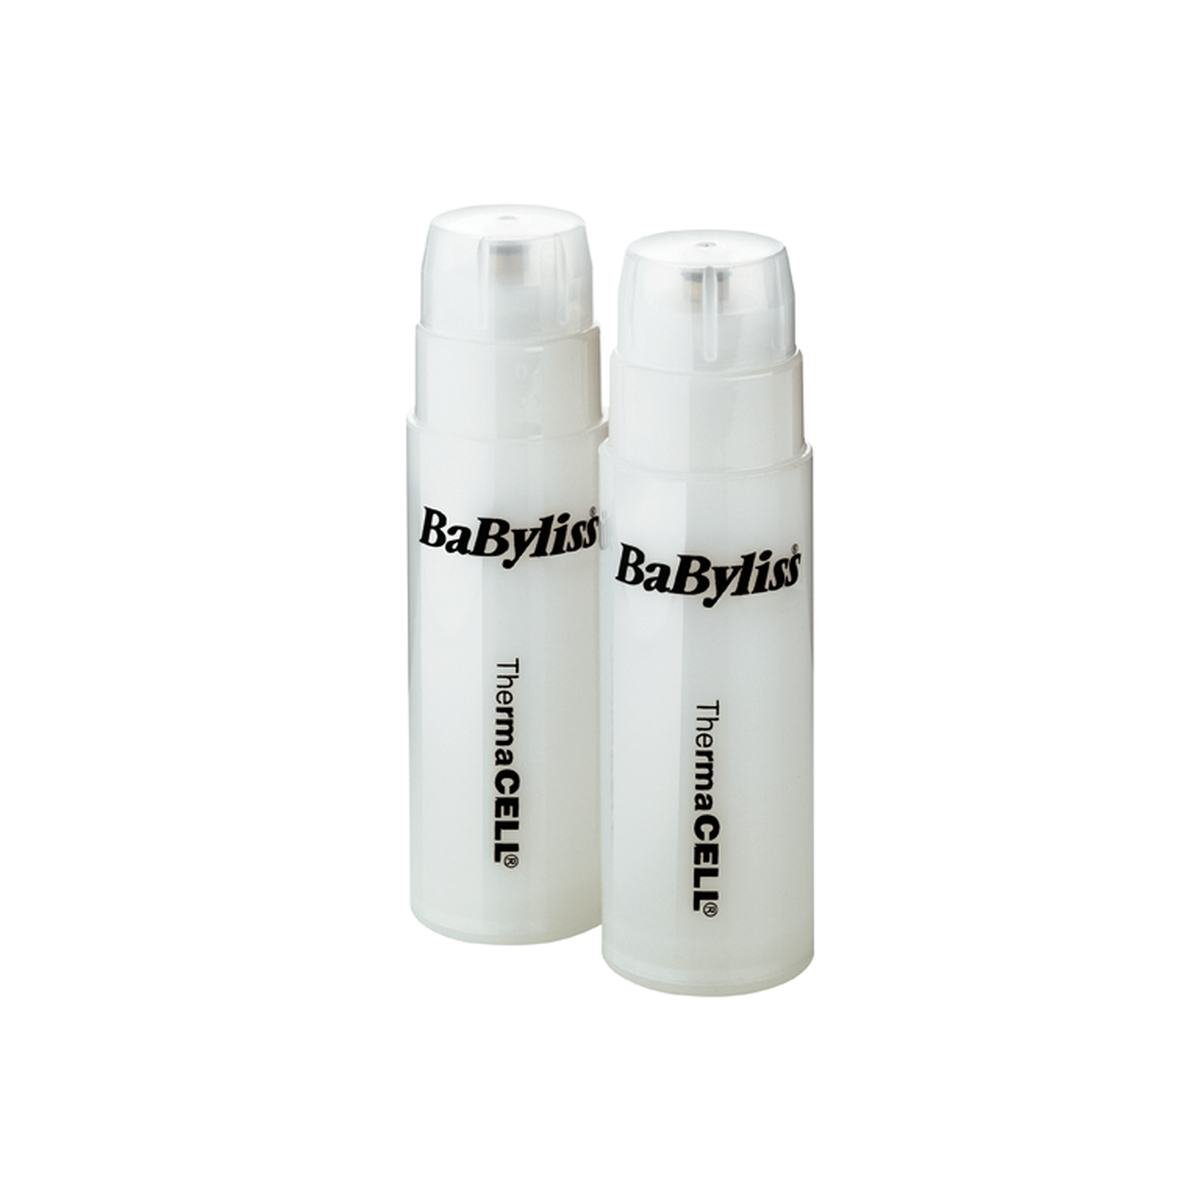 Gaspatron Therma Cell 2 st. - Babyliss